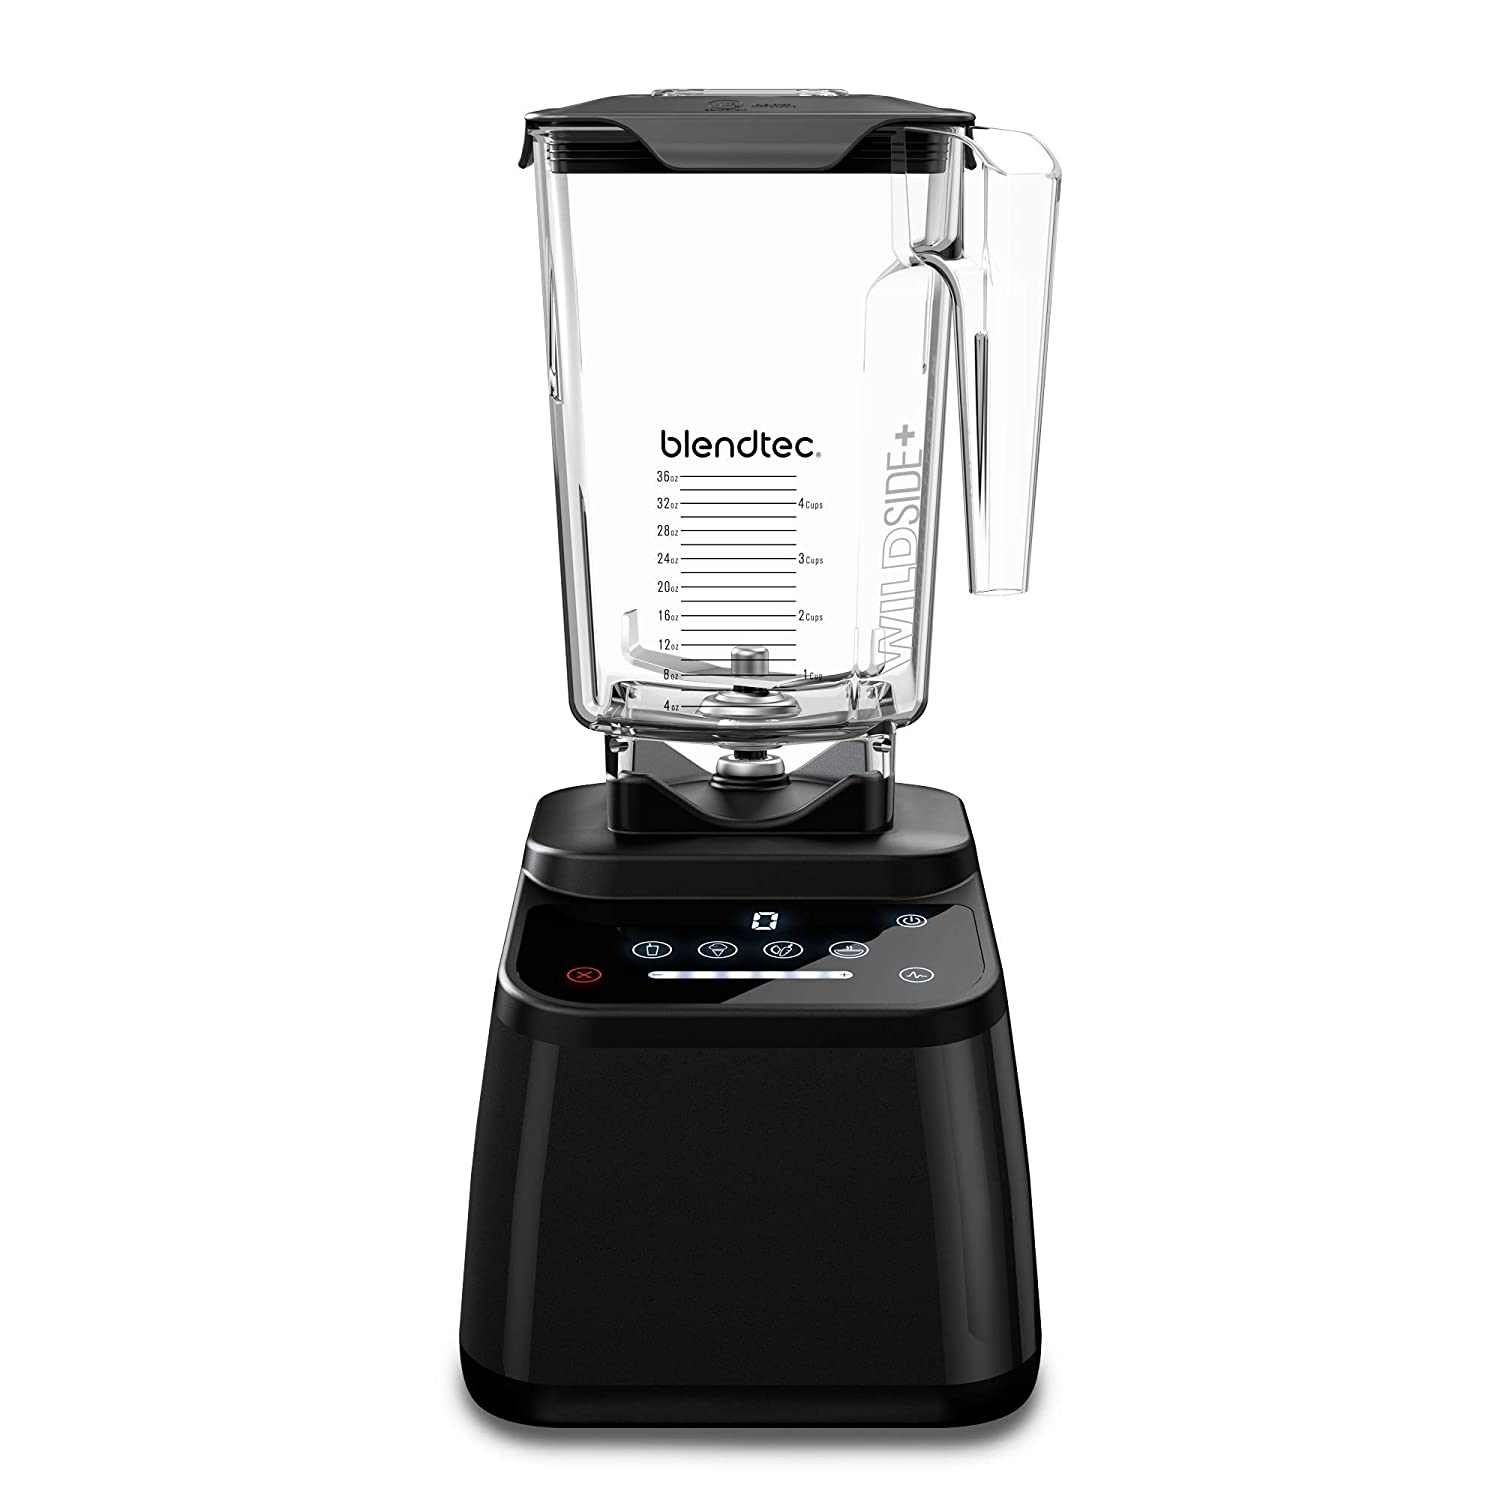 Blendtec Designer 625 Blender - WildSide+ Jar (90 oz) - Professional-Grade Power - 4 Pre-Programmed Cycles - 6-Speeds - Sleek and Slim - Black